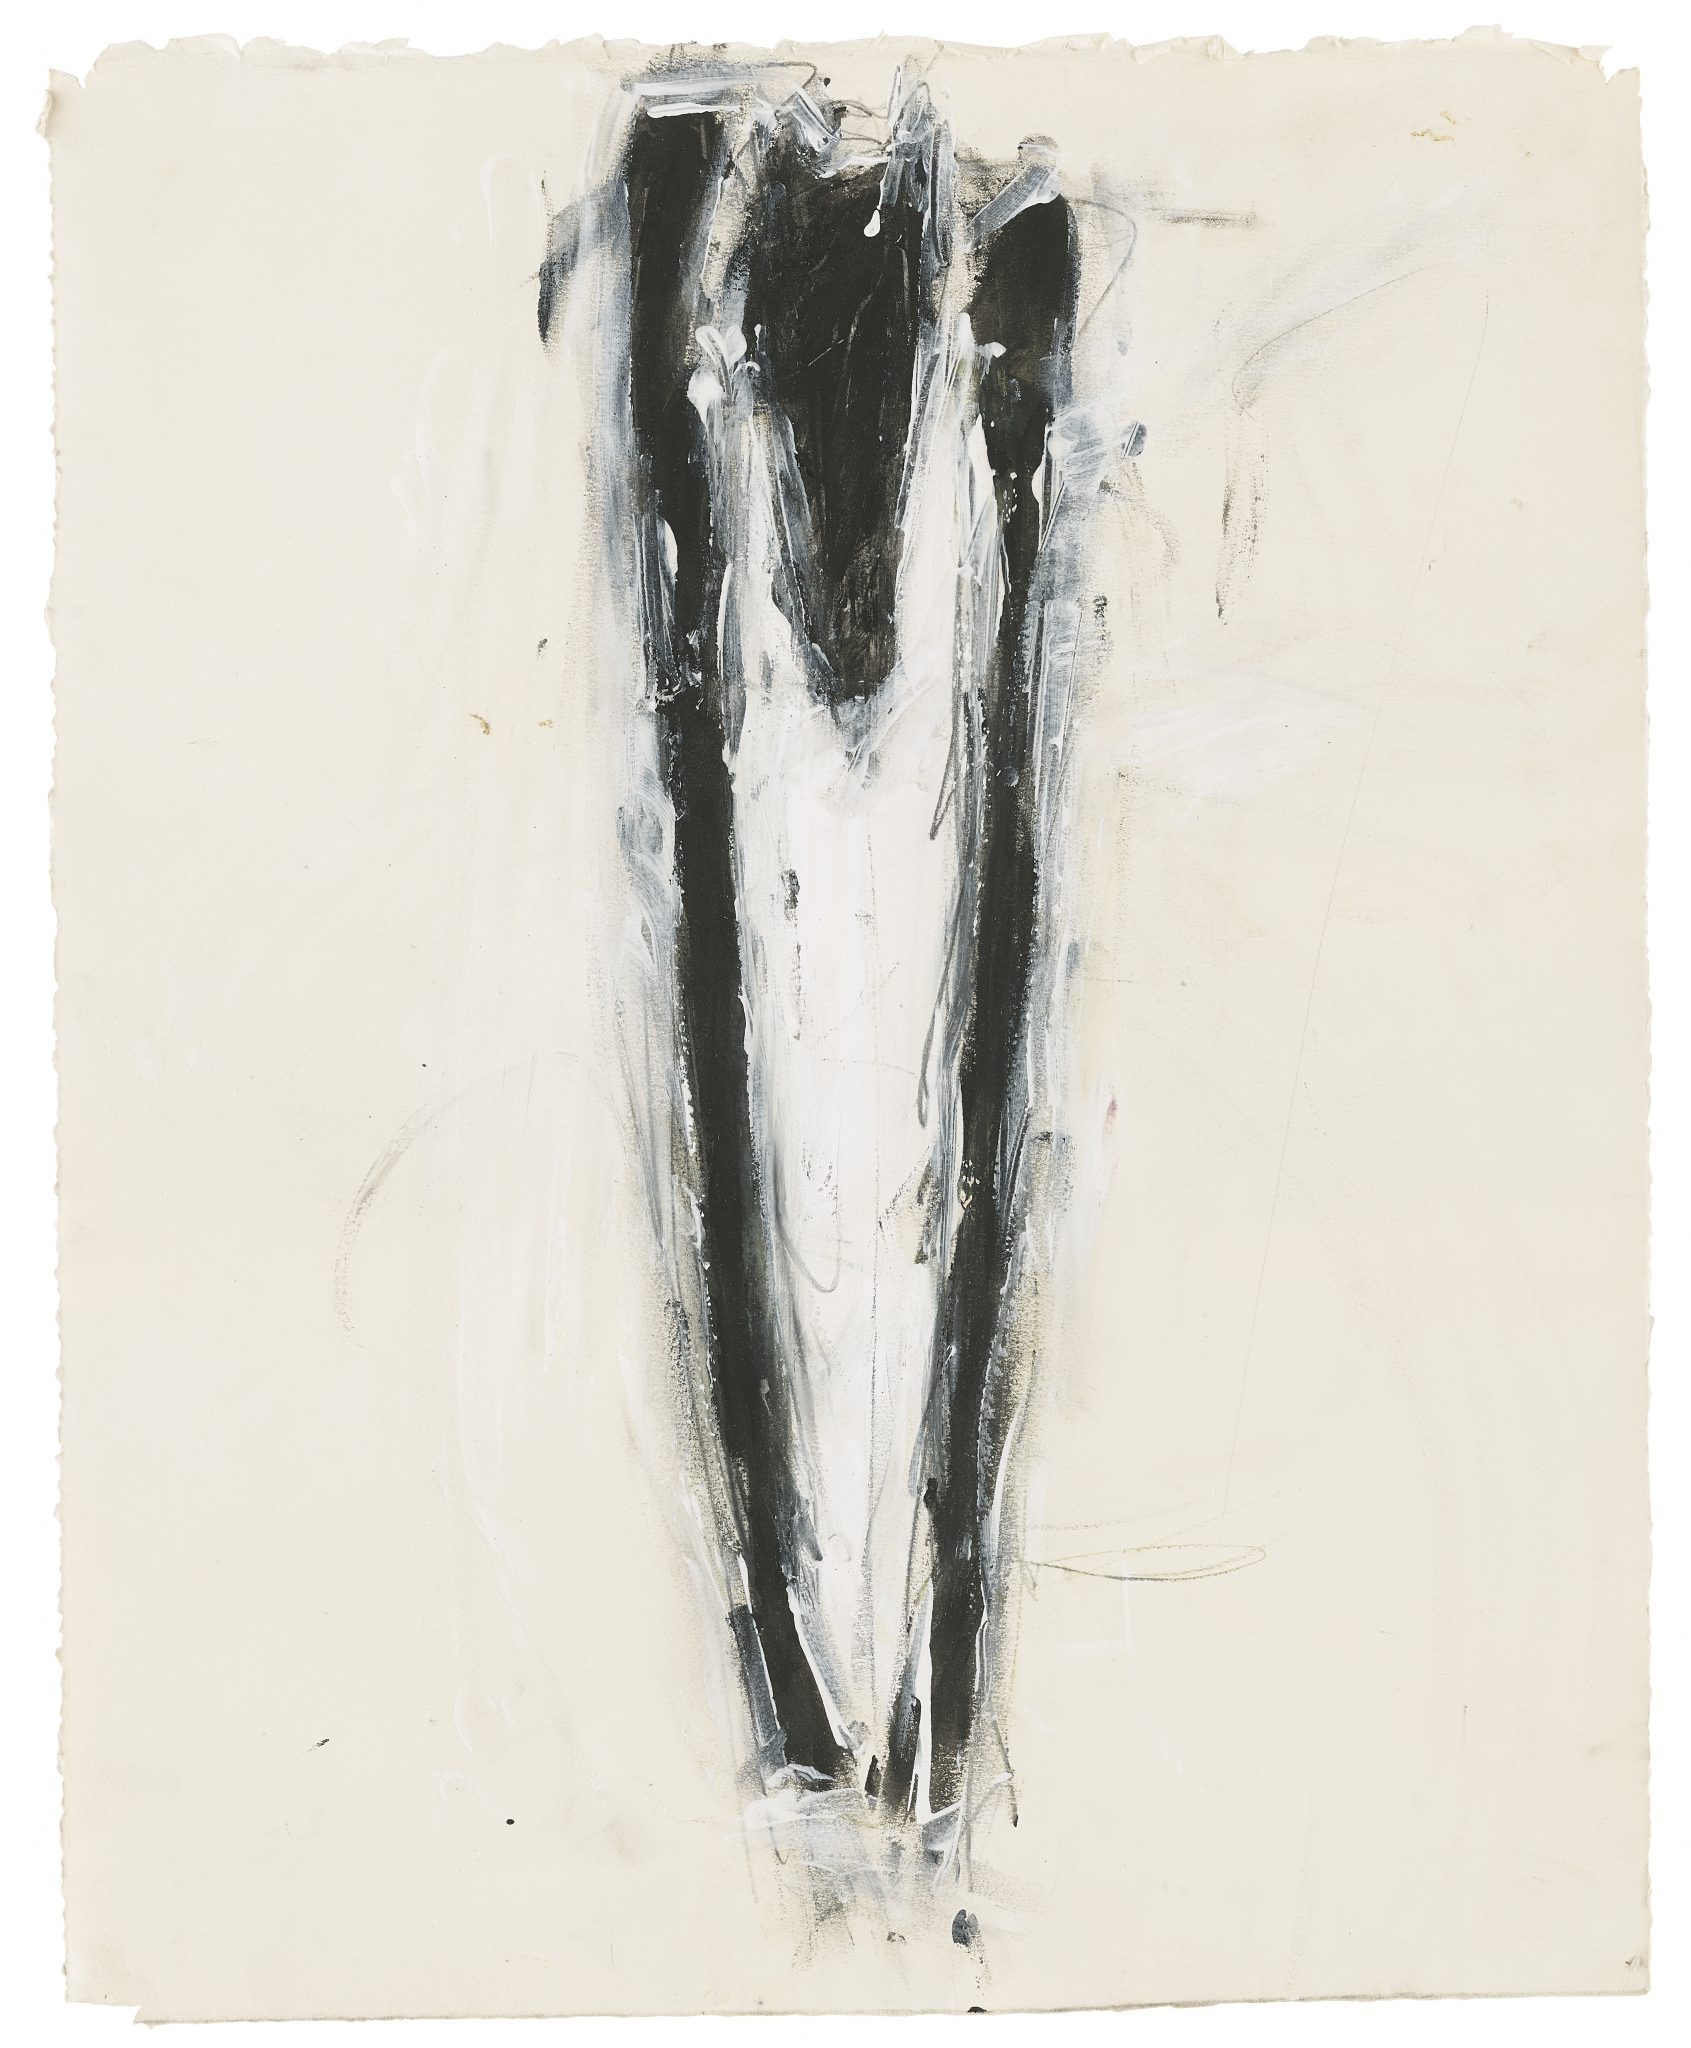 Susan Rothenberg, Untitled, 1979, acrylic, vinyl paint, colored pencil, and graphite on paper, 23 x 19 in., Jack Shear Collection, © 2021 Susan Rothenberg / Artists Rights Society (ARS), New York, photo courtesy of Jack Shear